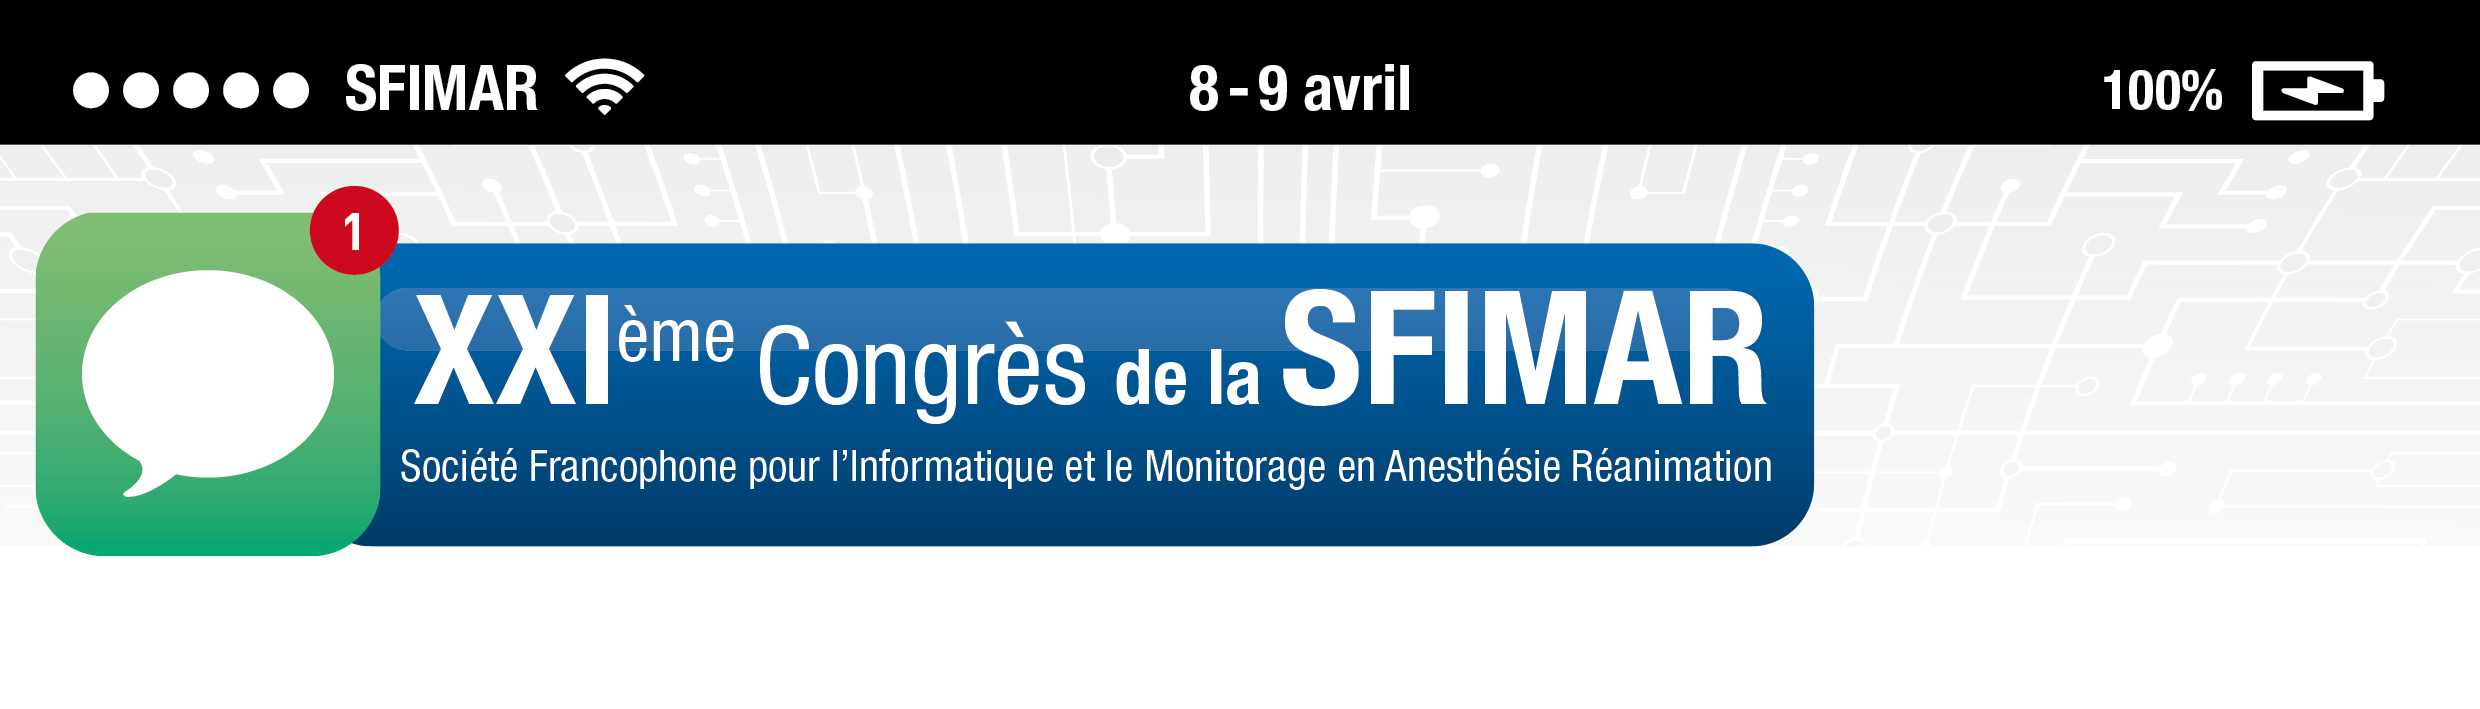 SFIMAR - 8 & 9 avril 2016 Grenoble